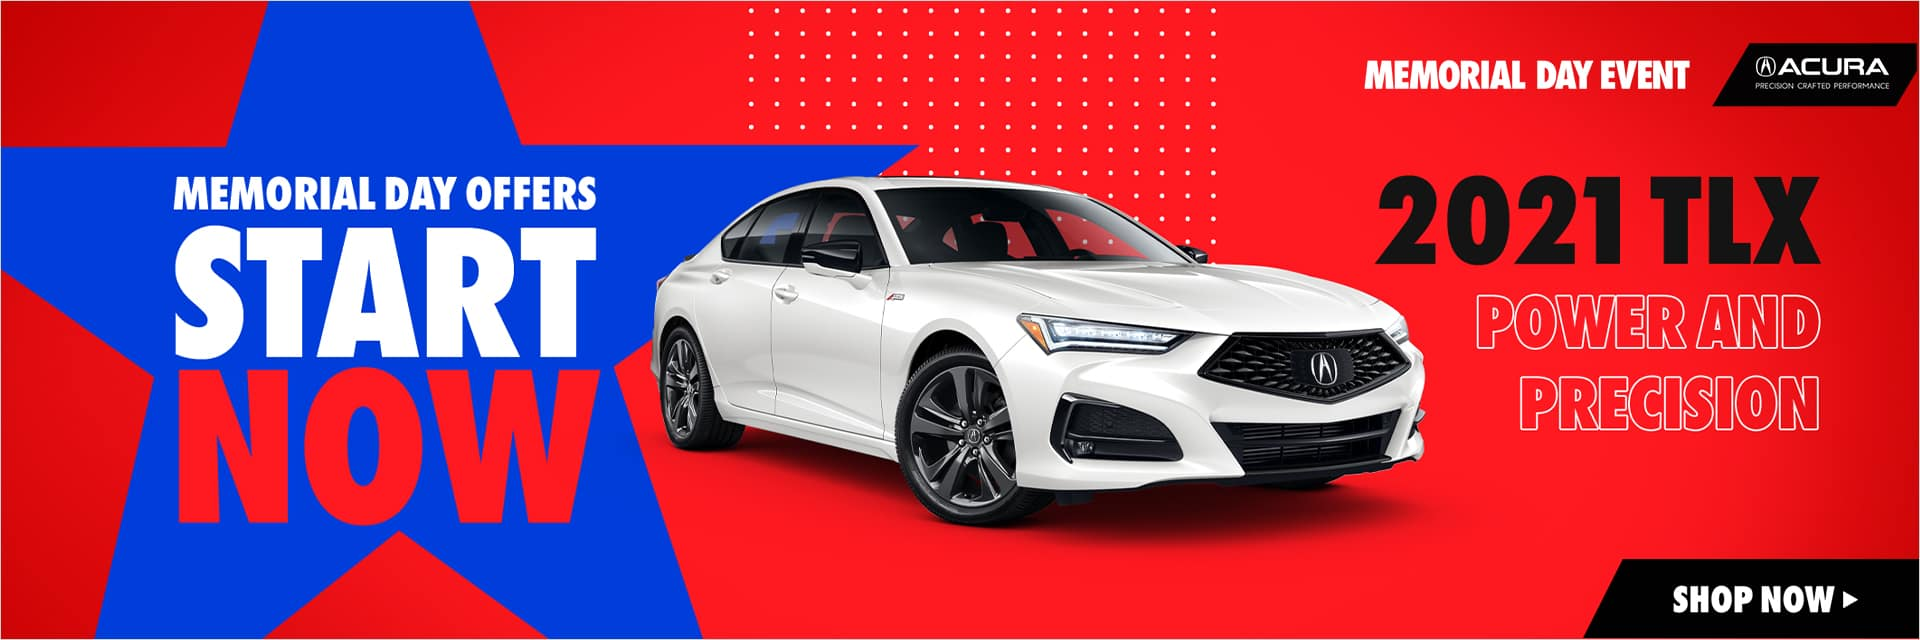 tlx 222